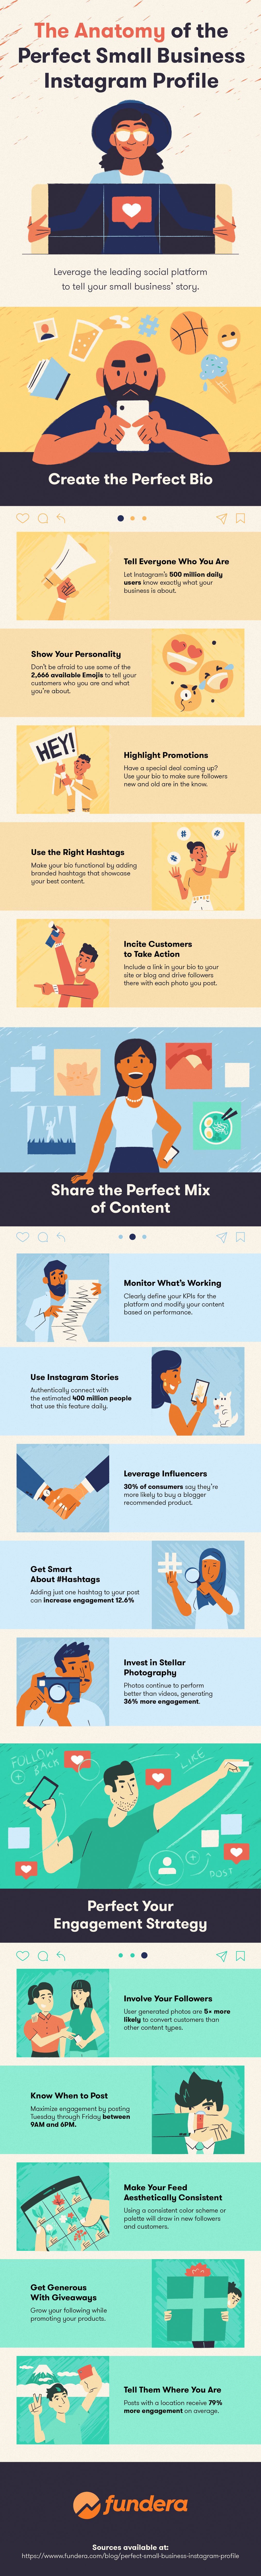 The anatomy of the perfect small business on Instagram - infographic